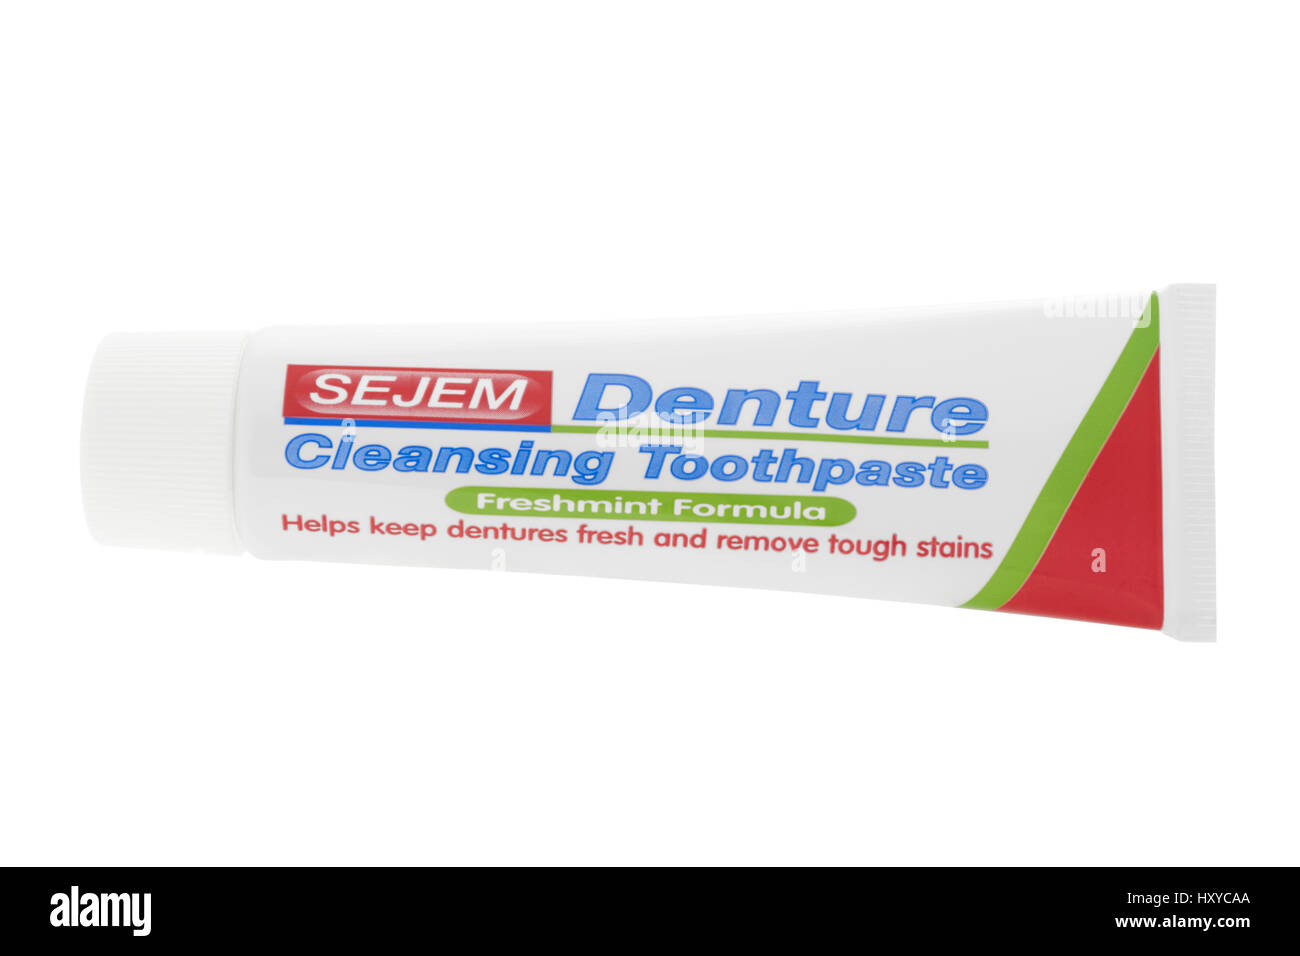 Tube of denture cleansing toothpaste on white background - Stock Image